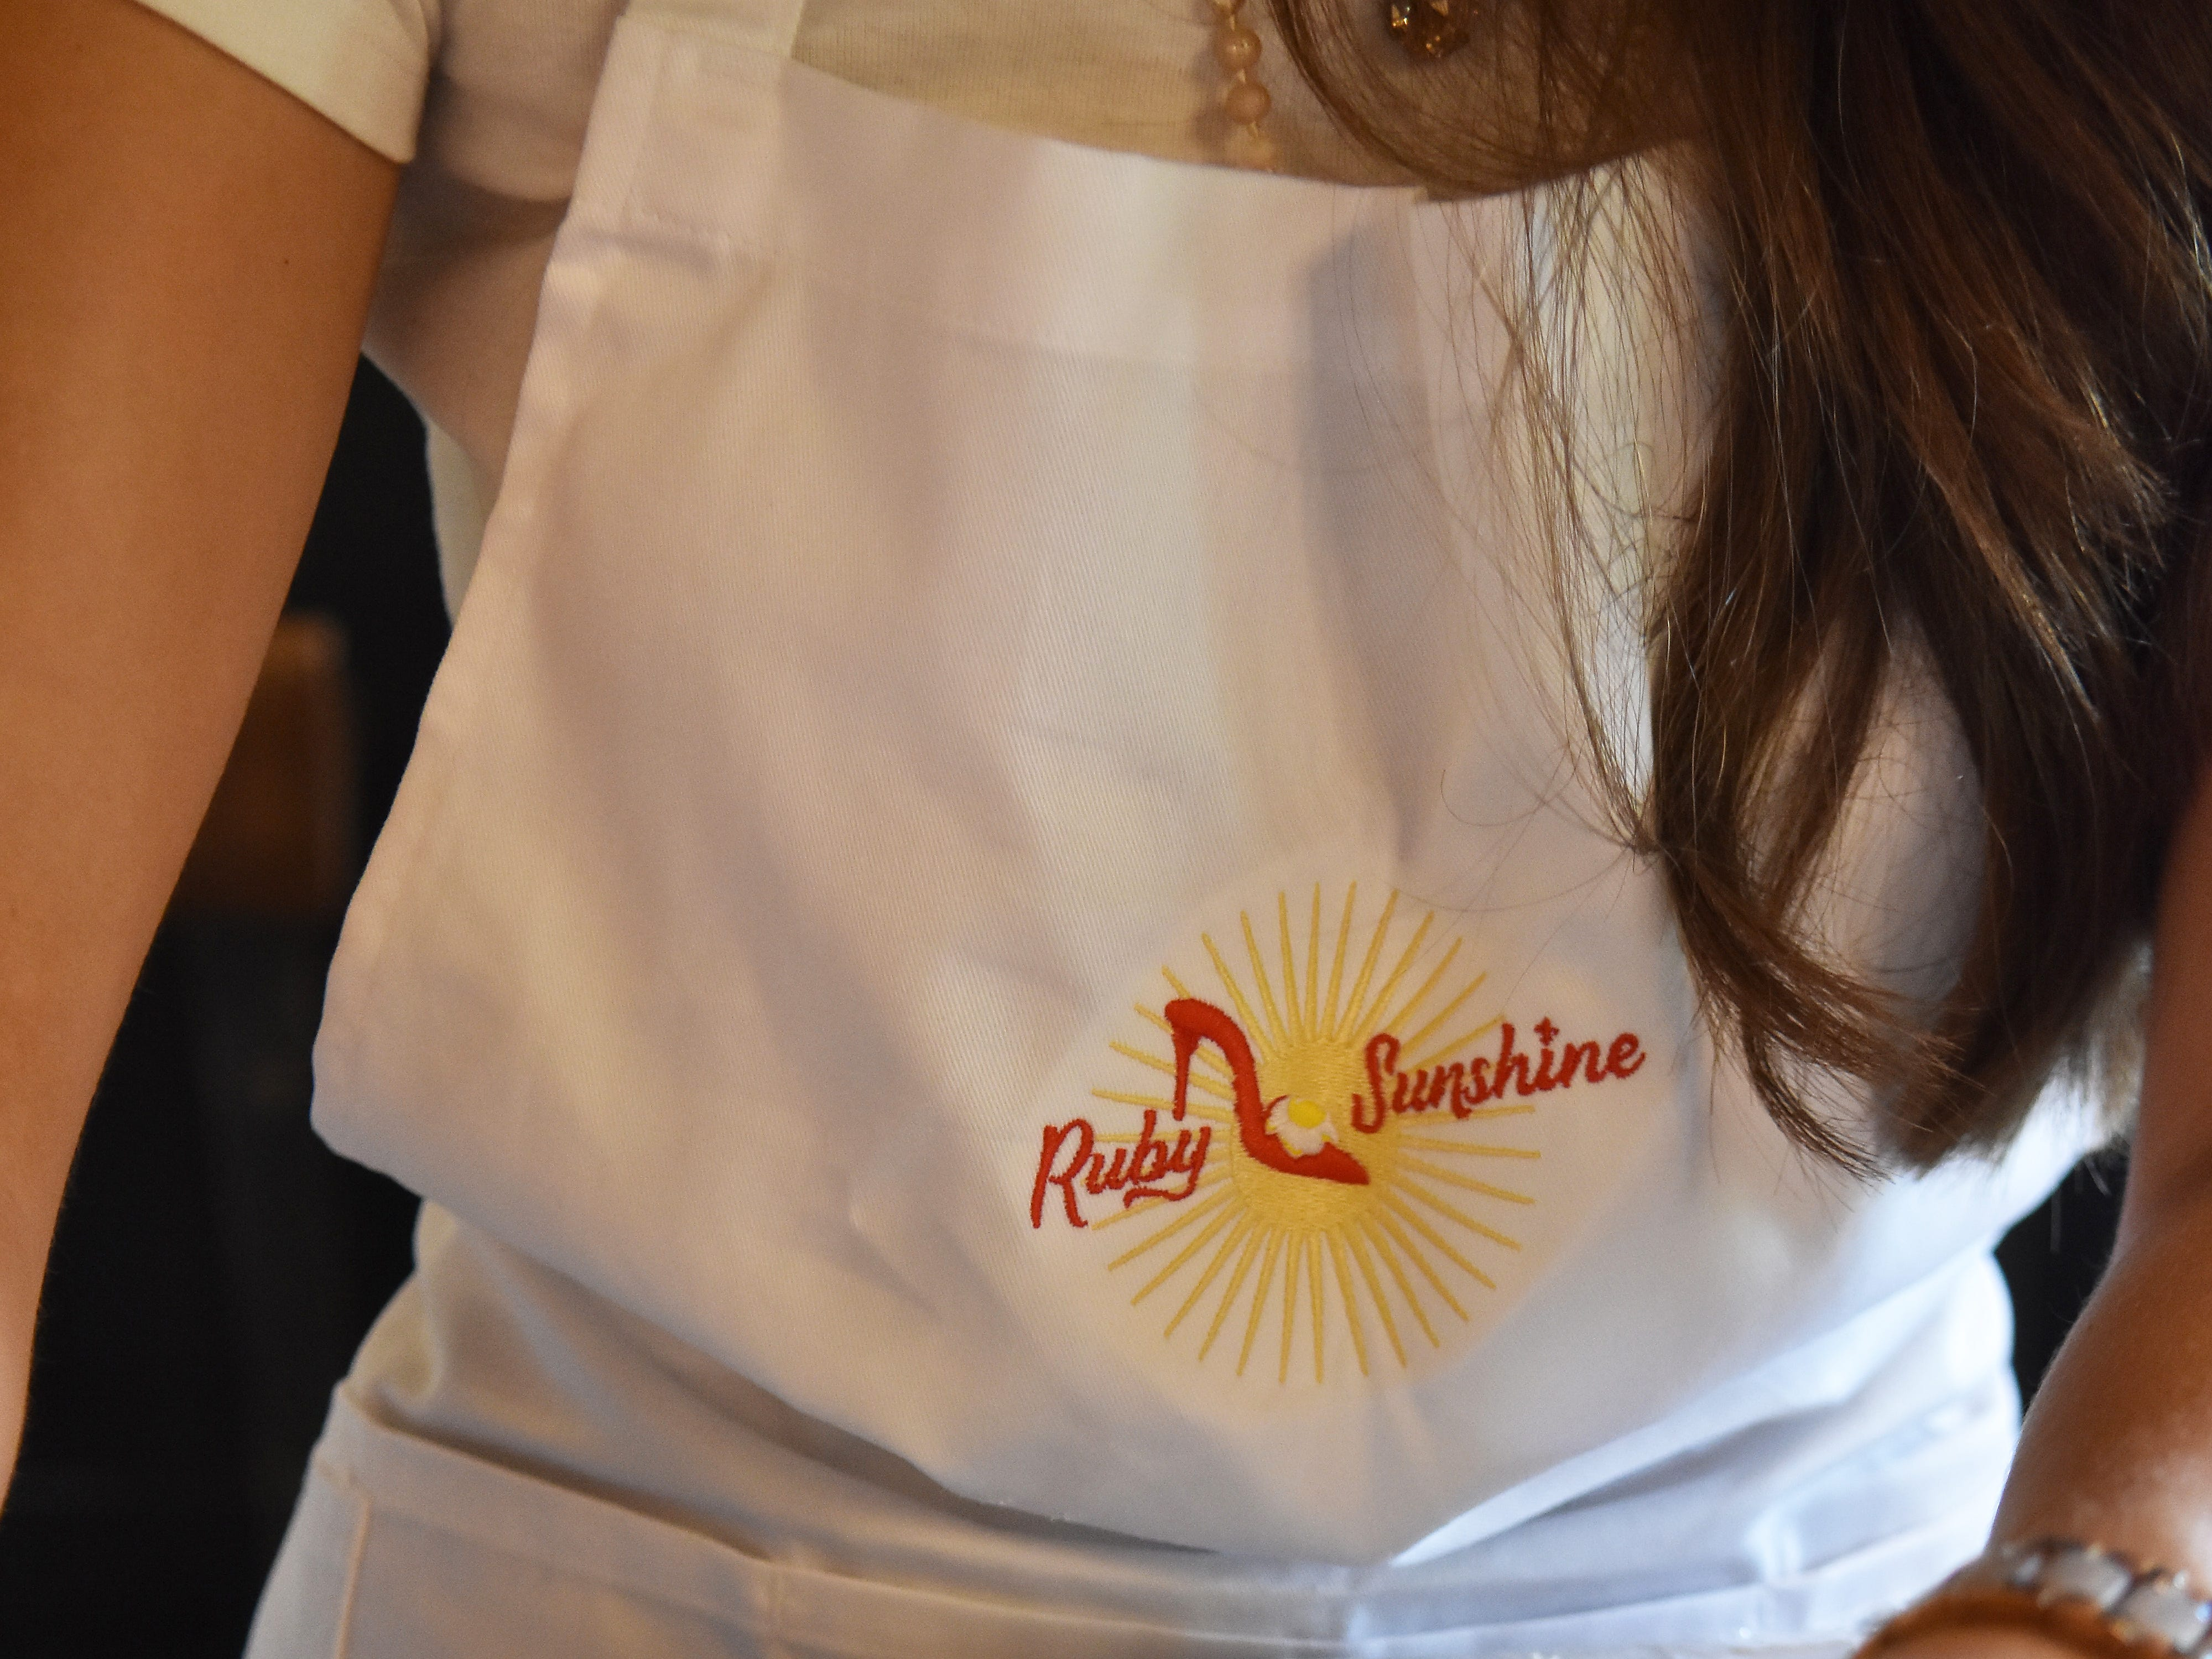 Ruby Sunshine will open in Market Square on Monday, May 20.